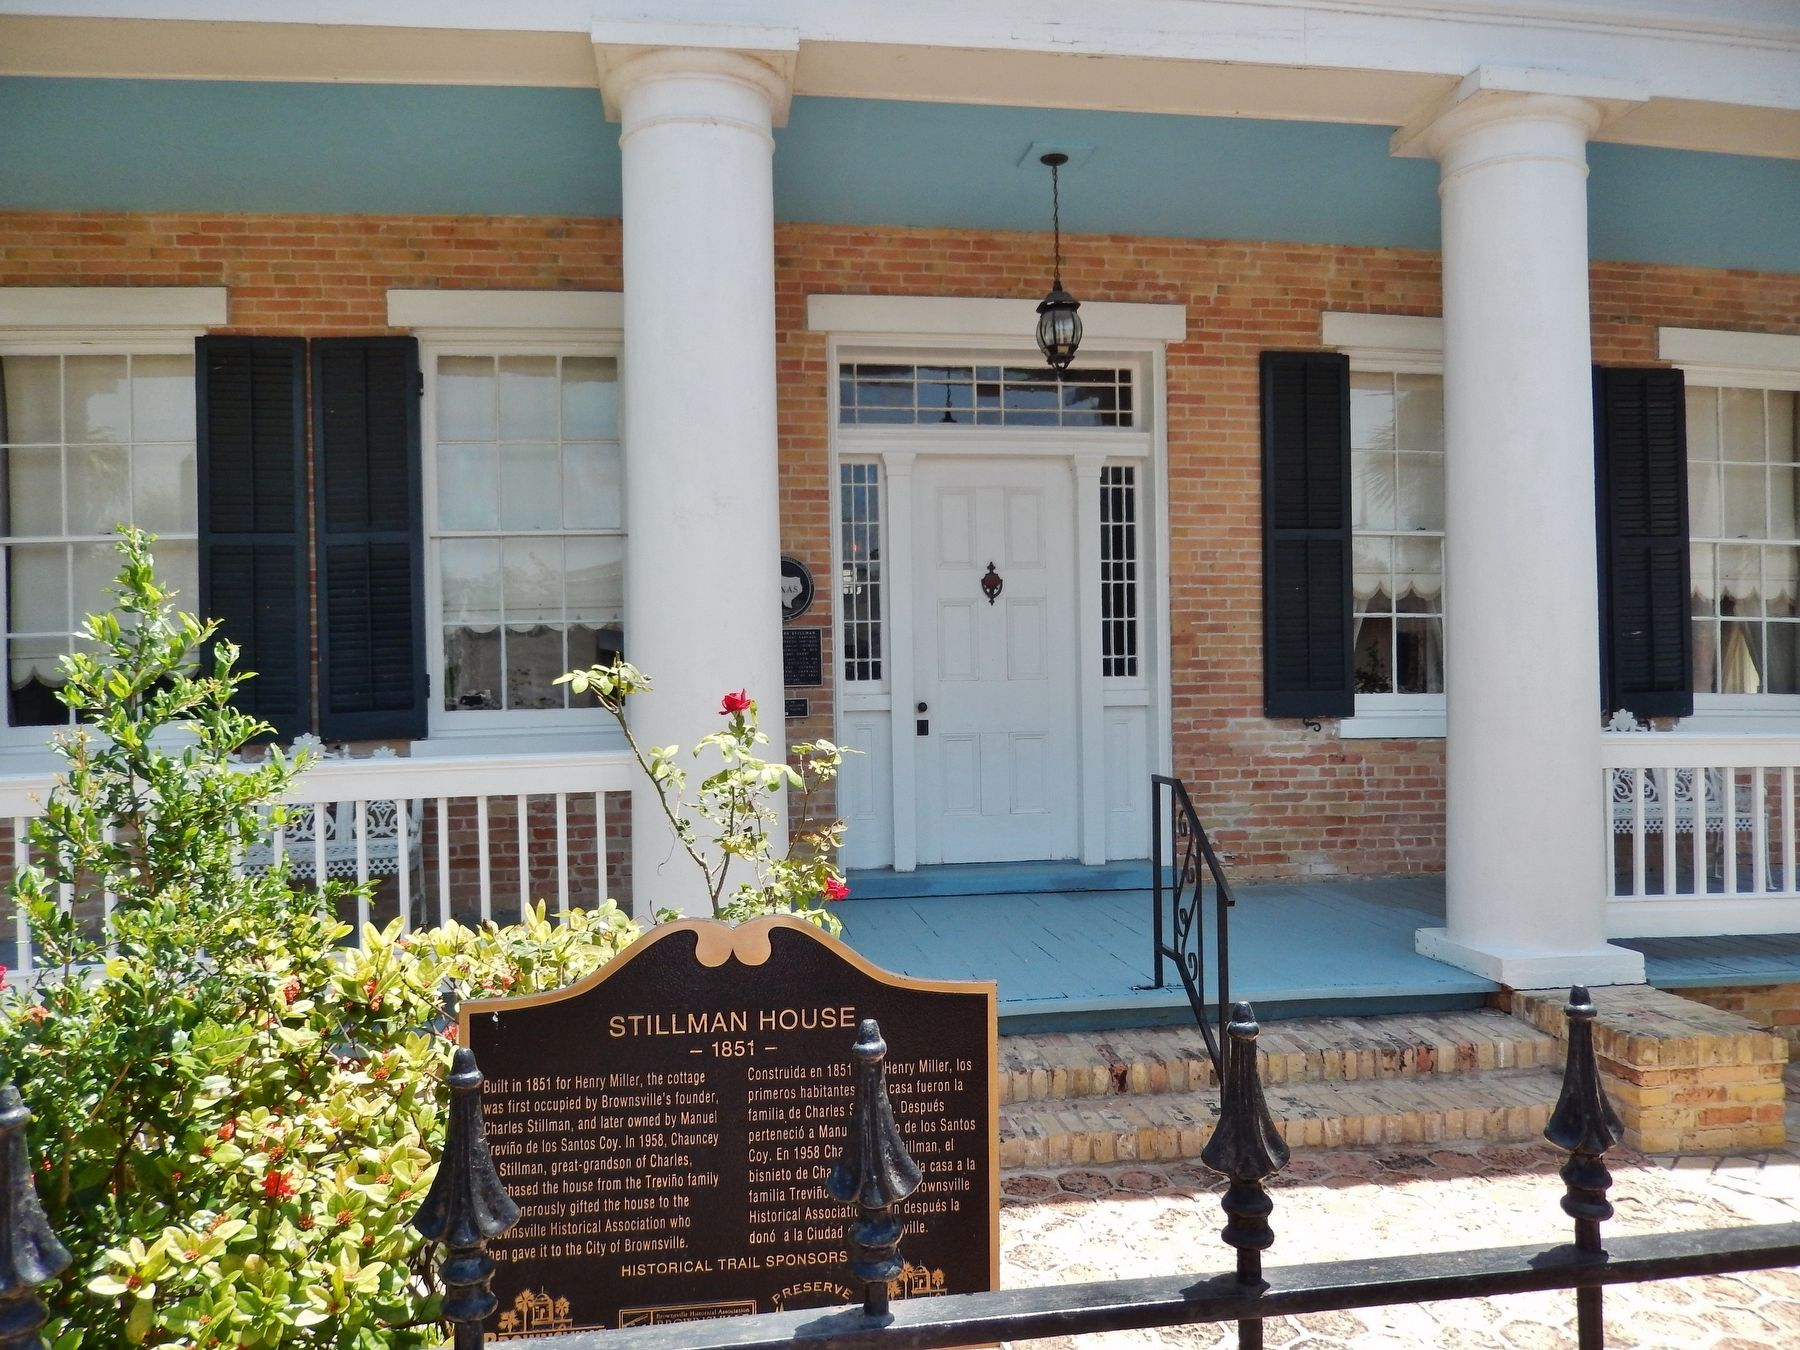 Stillman House Marker (<i>wide view; Stillman House patio & entrance in background</i>) image. Click for full size.